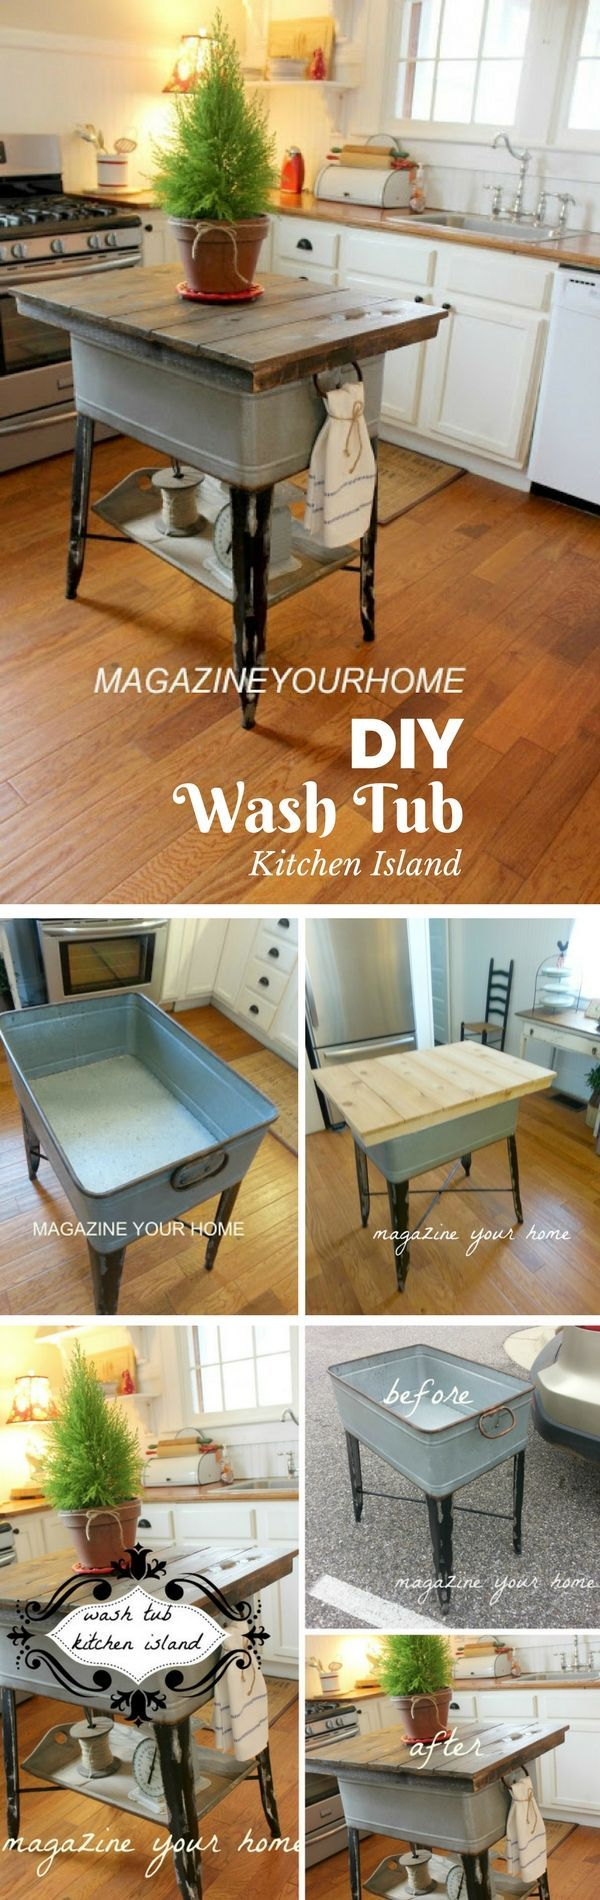 Check out the tutorial on how to build a DIY kitchen island from a wash tub @istandarddesign